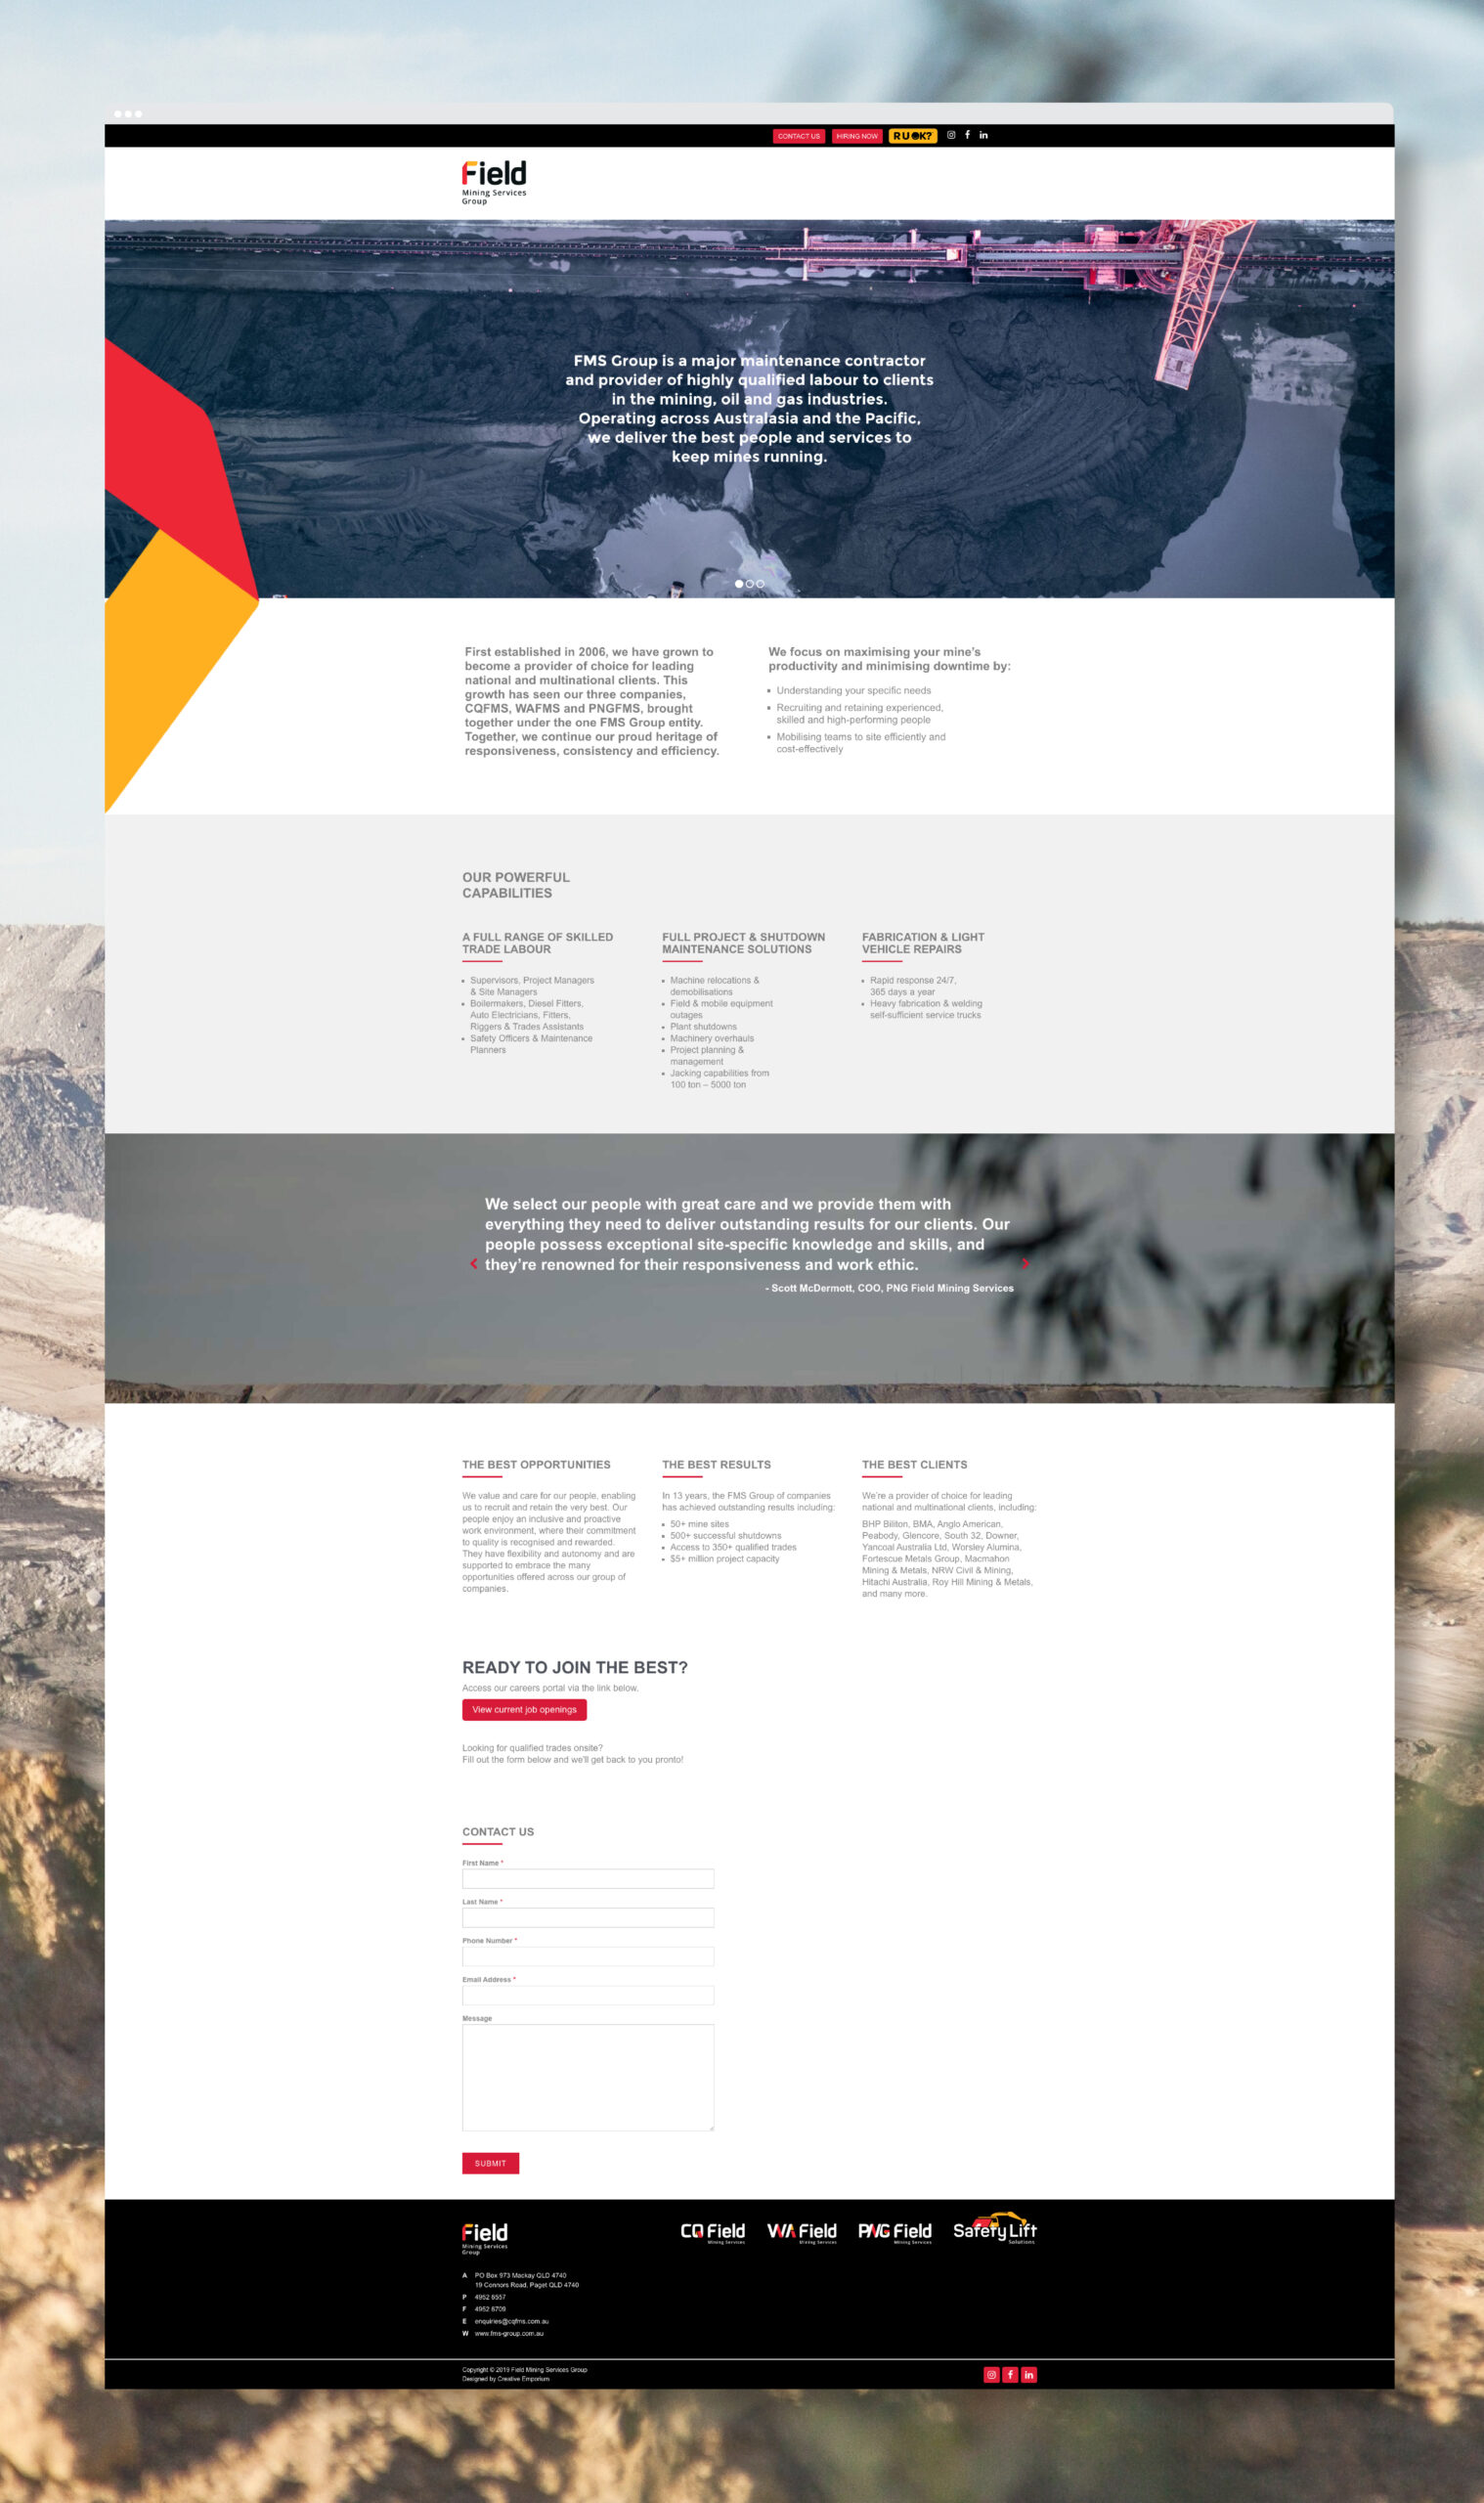 Field Mining Services Group Website Landing Page Mockup